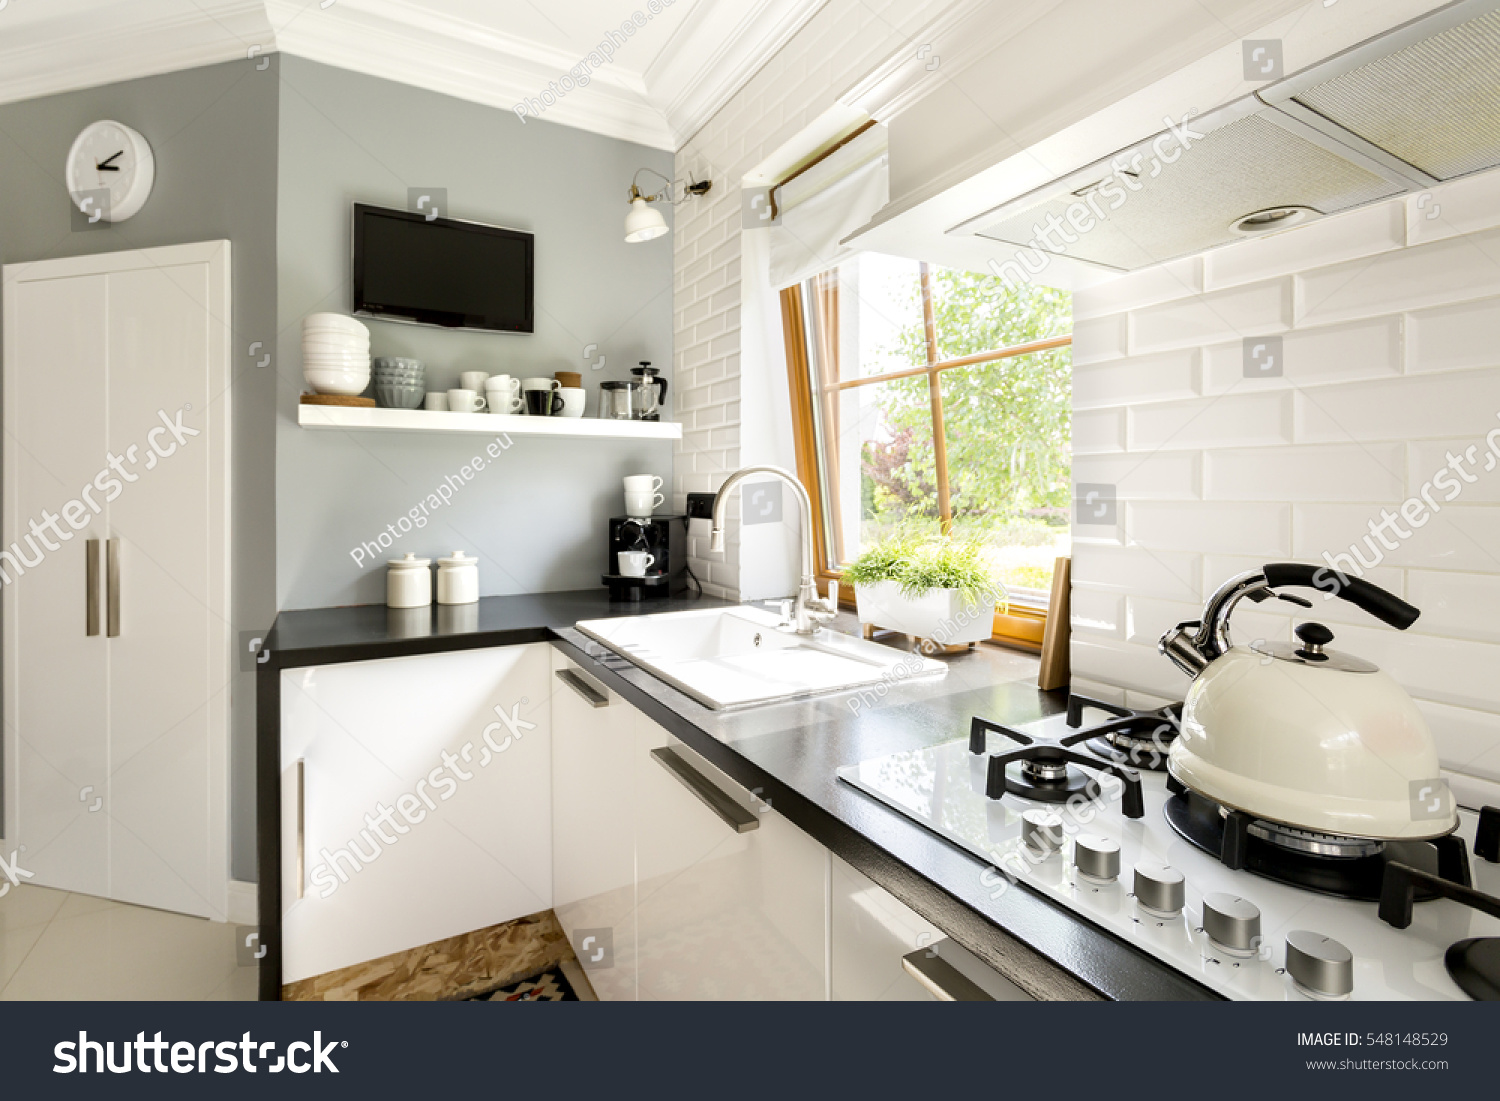 Functional modern white kitchen cabinets stove stock photo for White stock cabinets